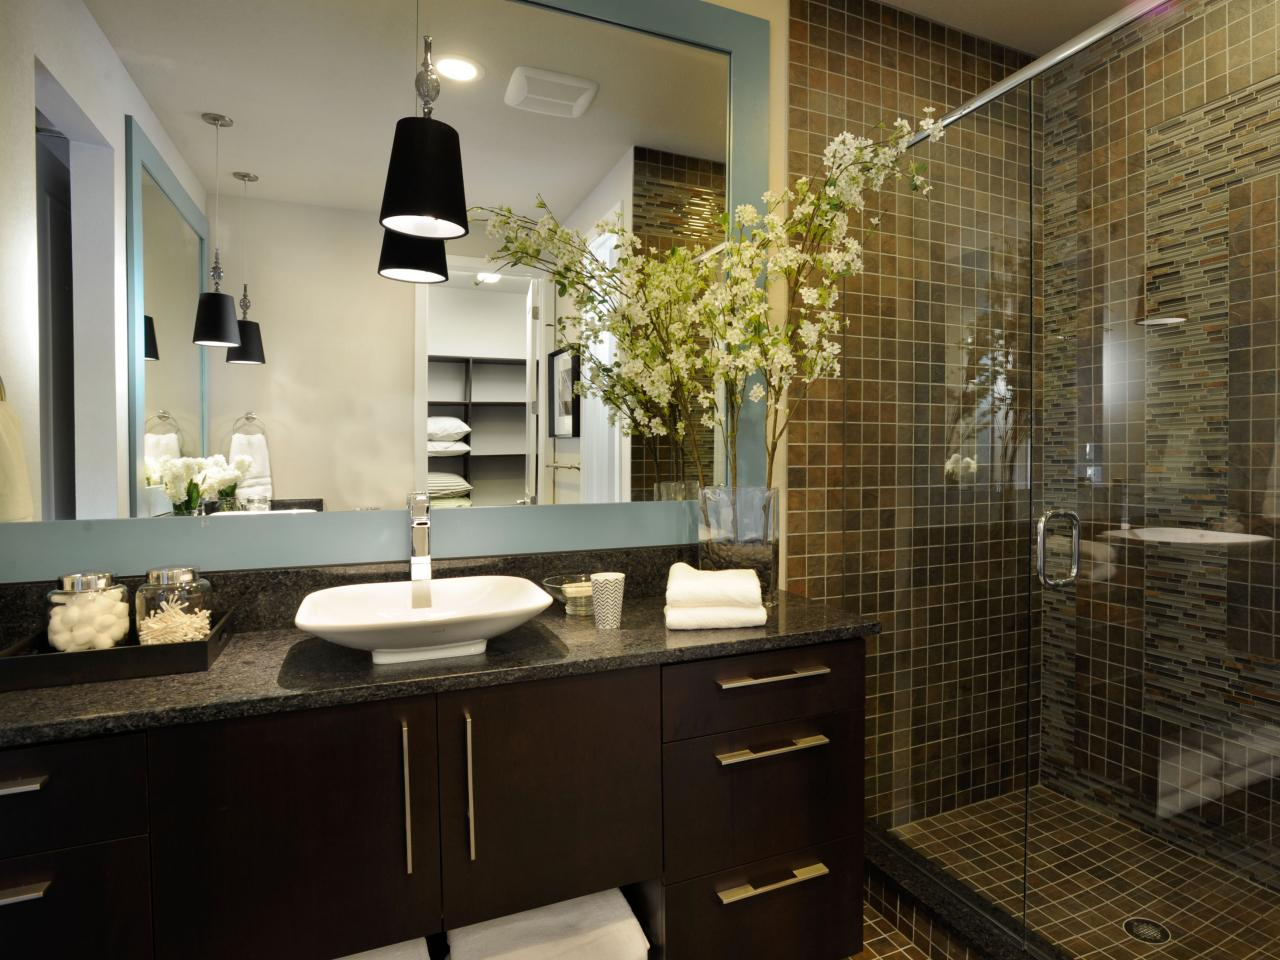 Charmant Bathroom Decorating Tips And Ideas